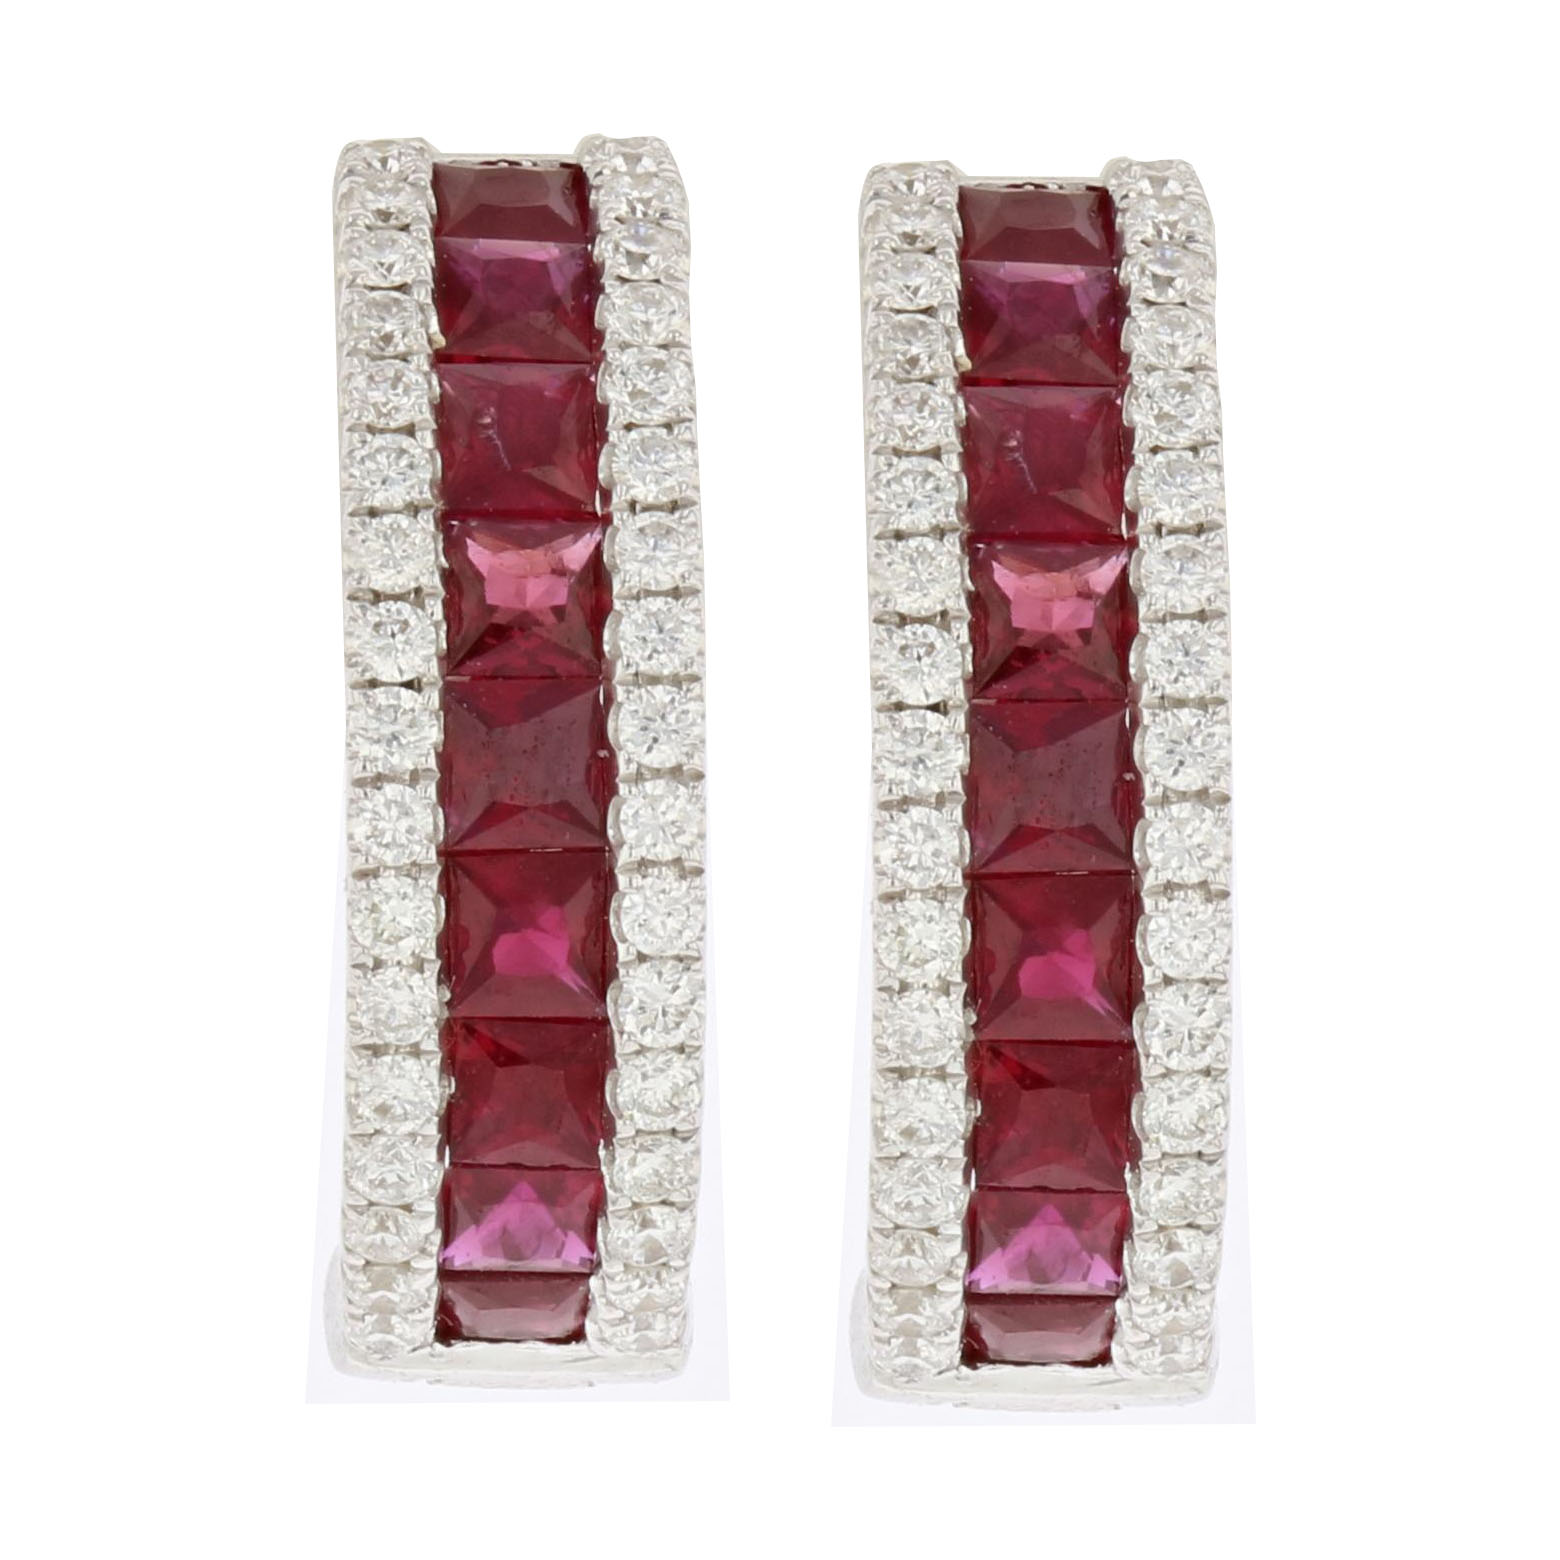 View 1.02ctw Diamond and Ruby Hoop Earrings in 18k White Gold